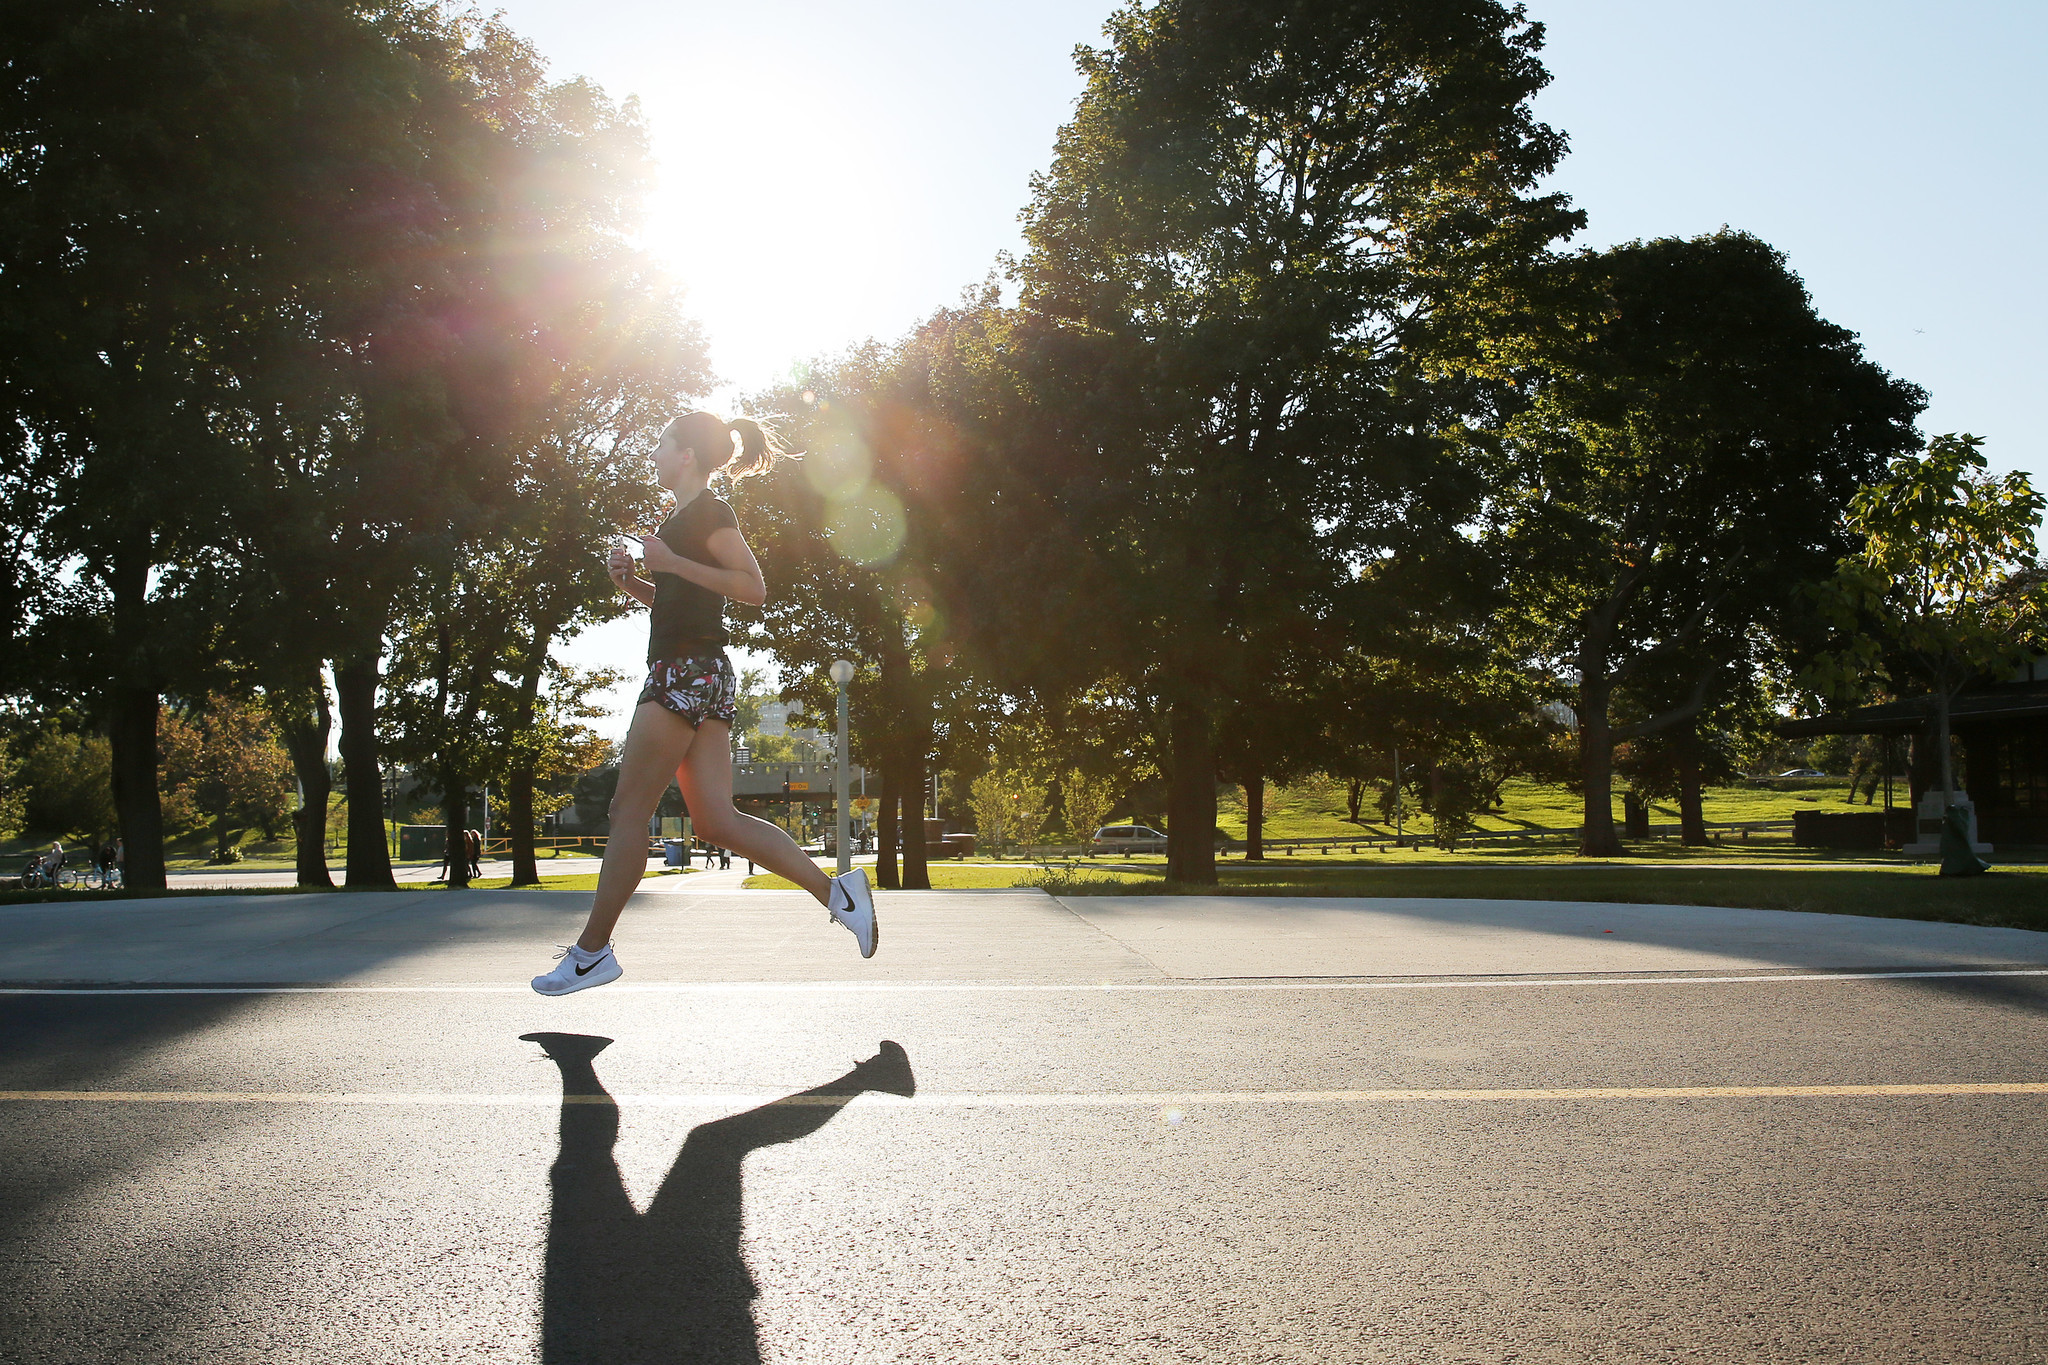 In middle age, your best running days may still be ahead of you